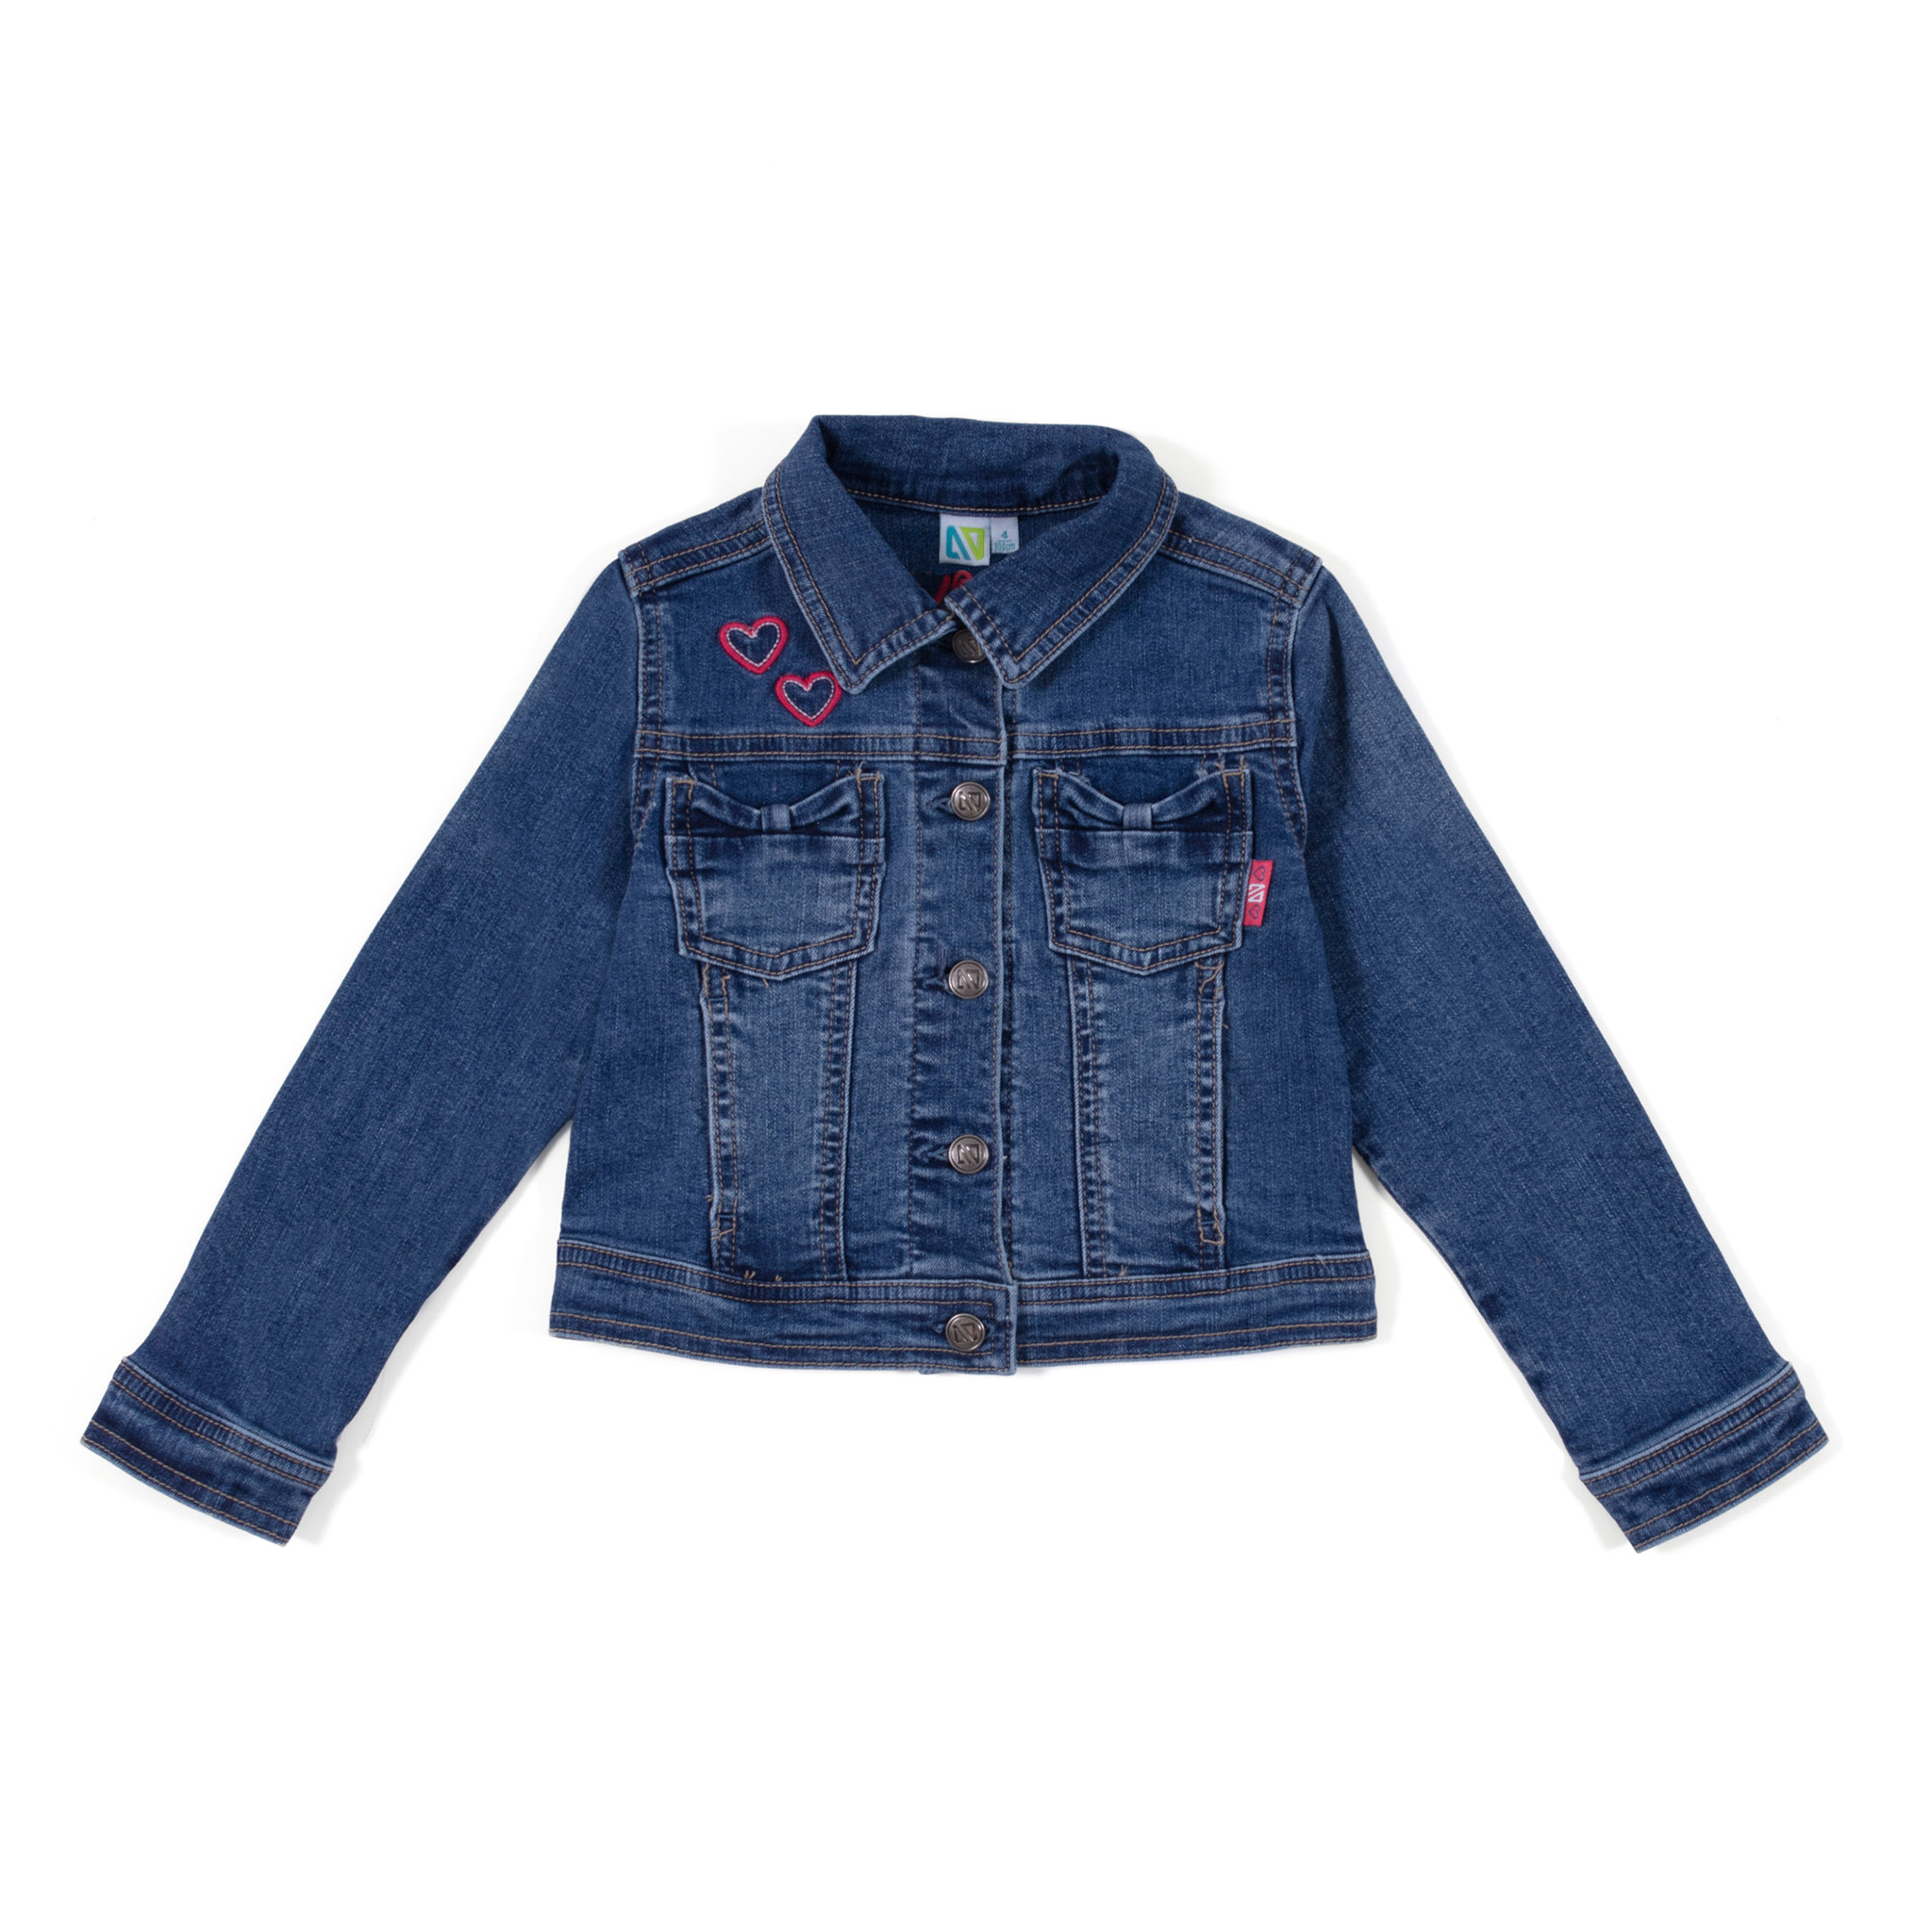 Jeans jacket - Denim - Girls